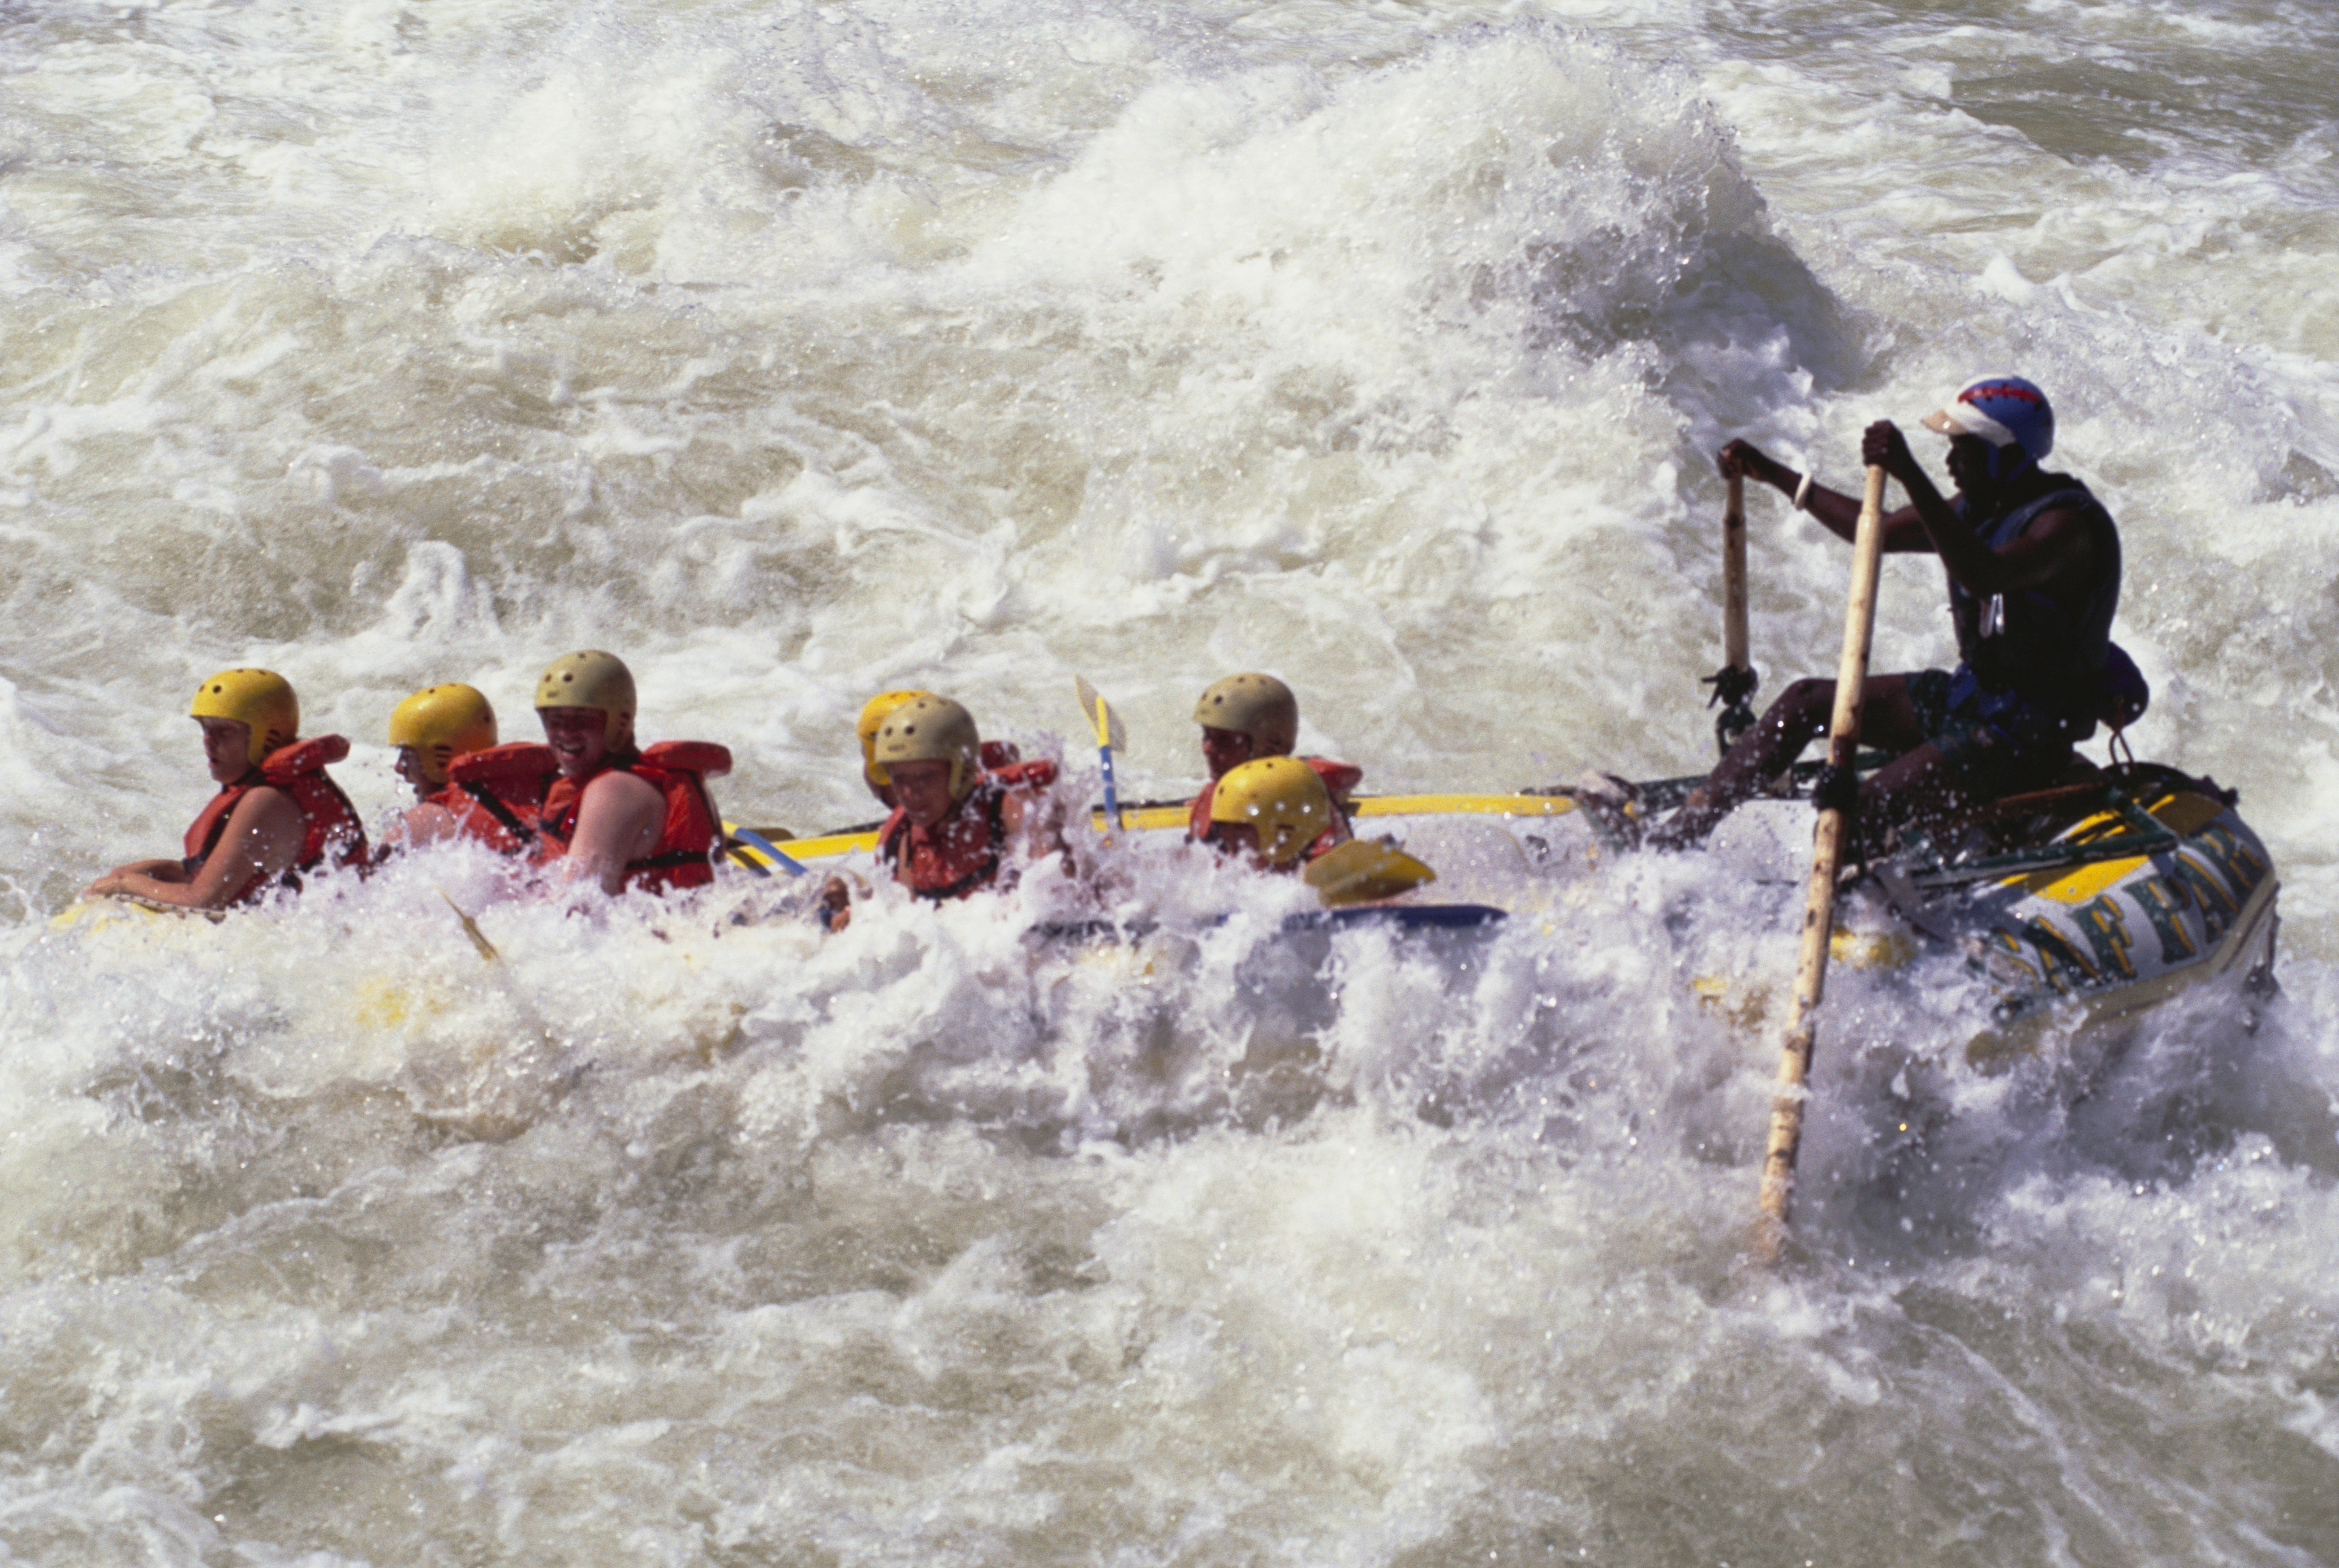 This archive photo shows people whitewater rafting